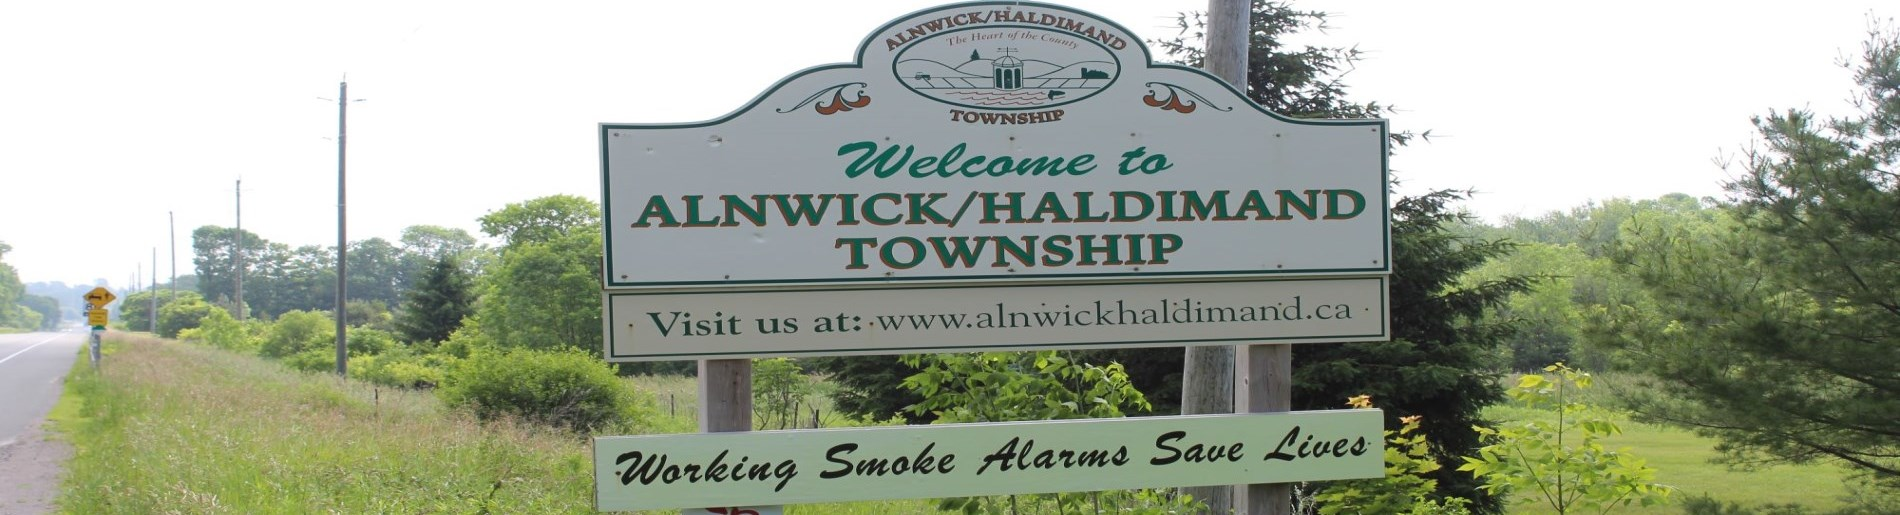 township sign